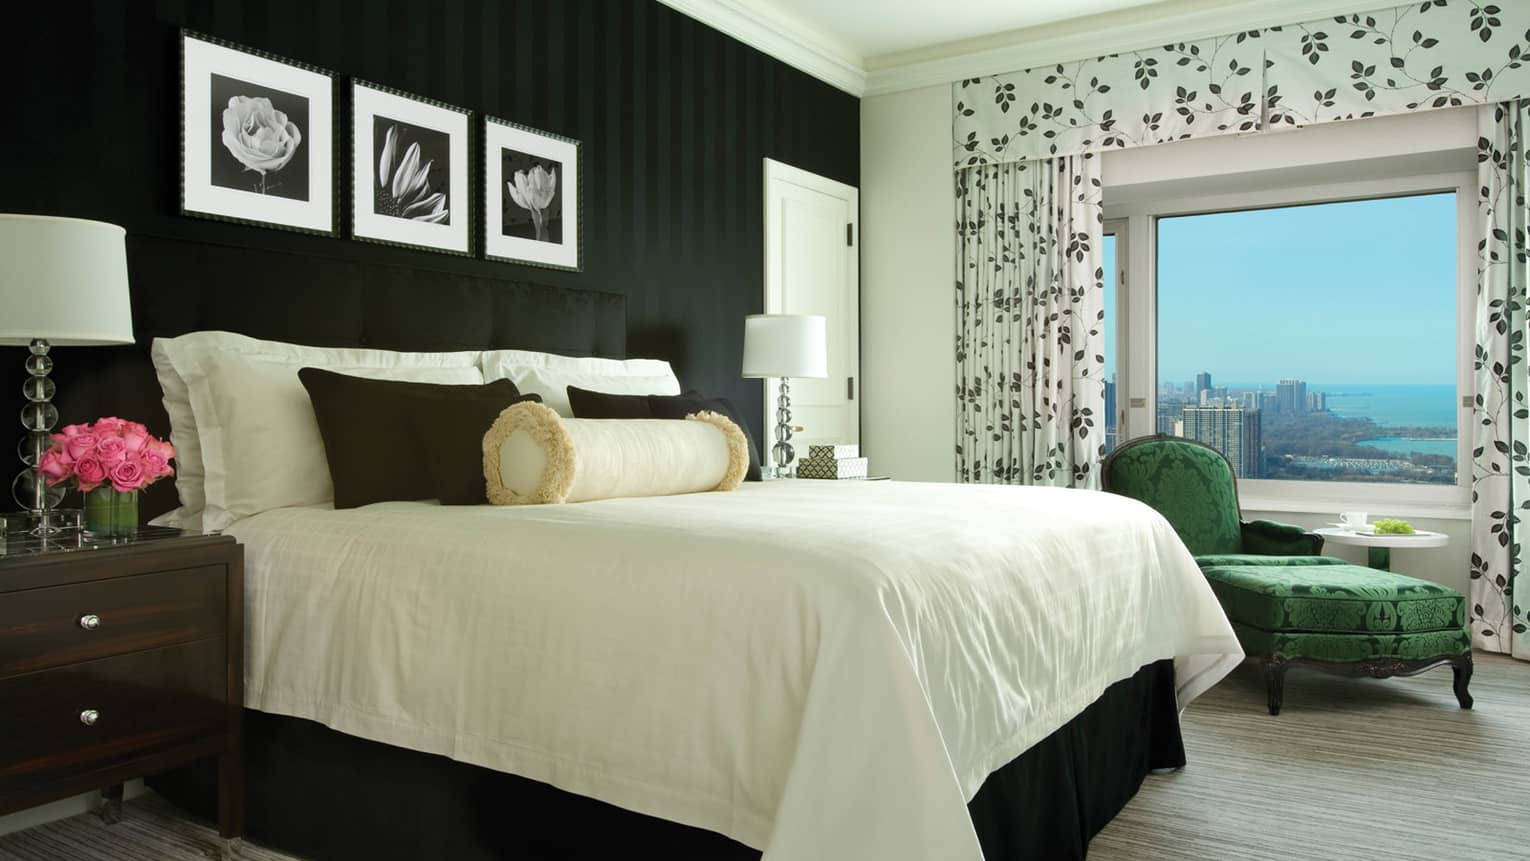 Presidential Suite bed with white linens, black accent pillows, black wallpaper, green silk floral chaise, black-and-white drapes